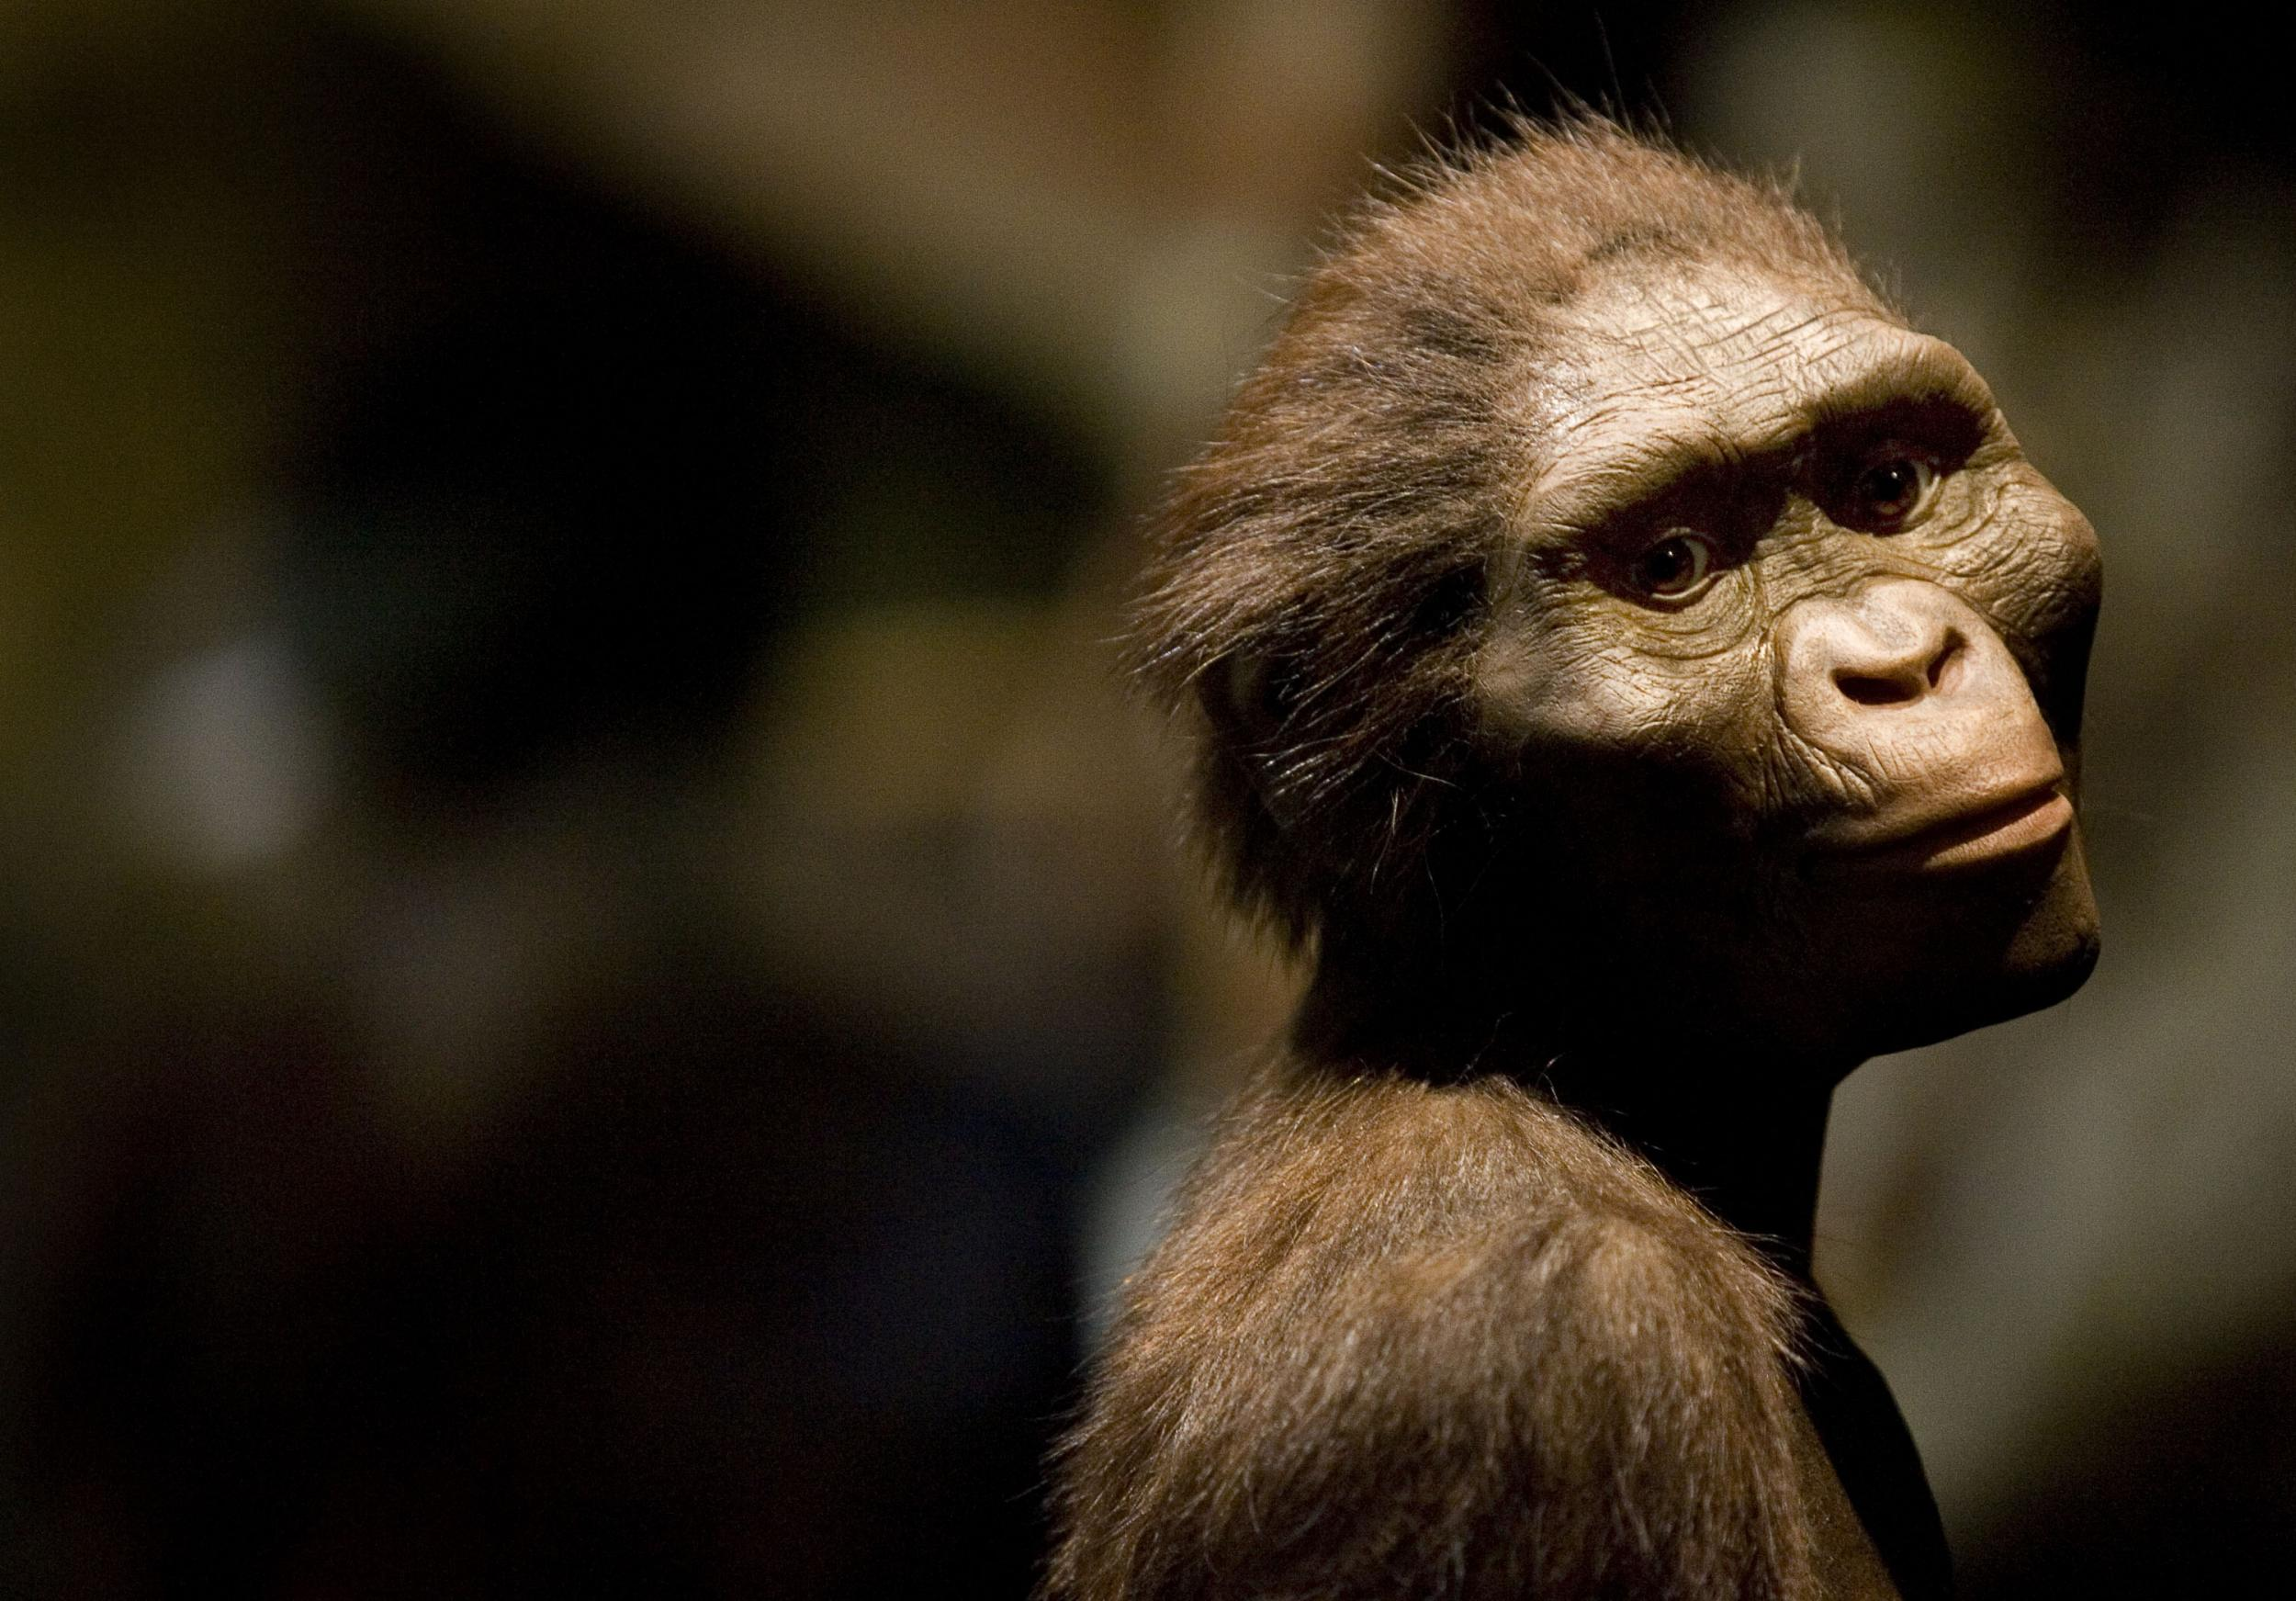 An Important Discovery Related To >> Who Discovered Lucy The Australopithecus And Why Was The